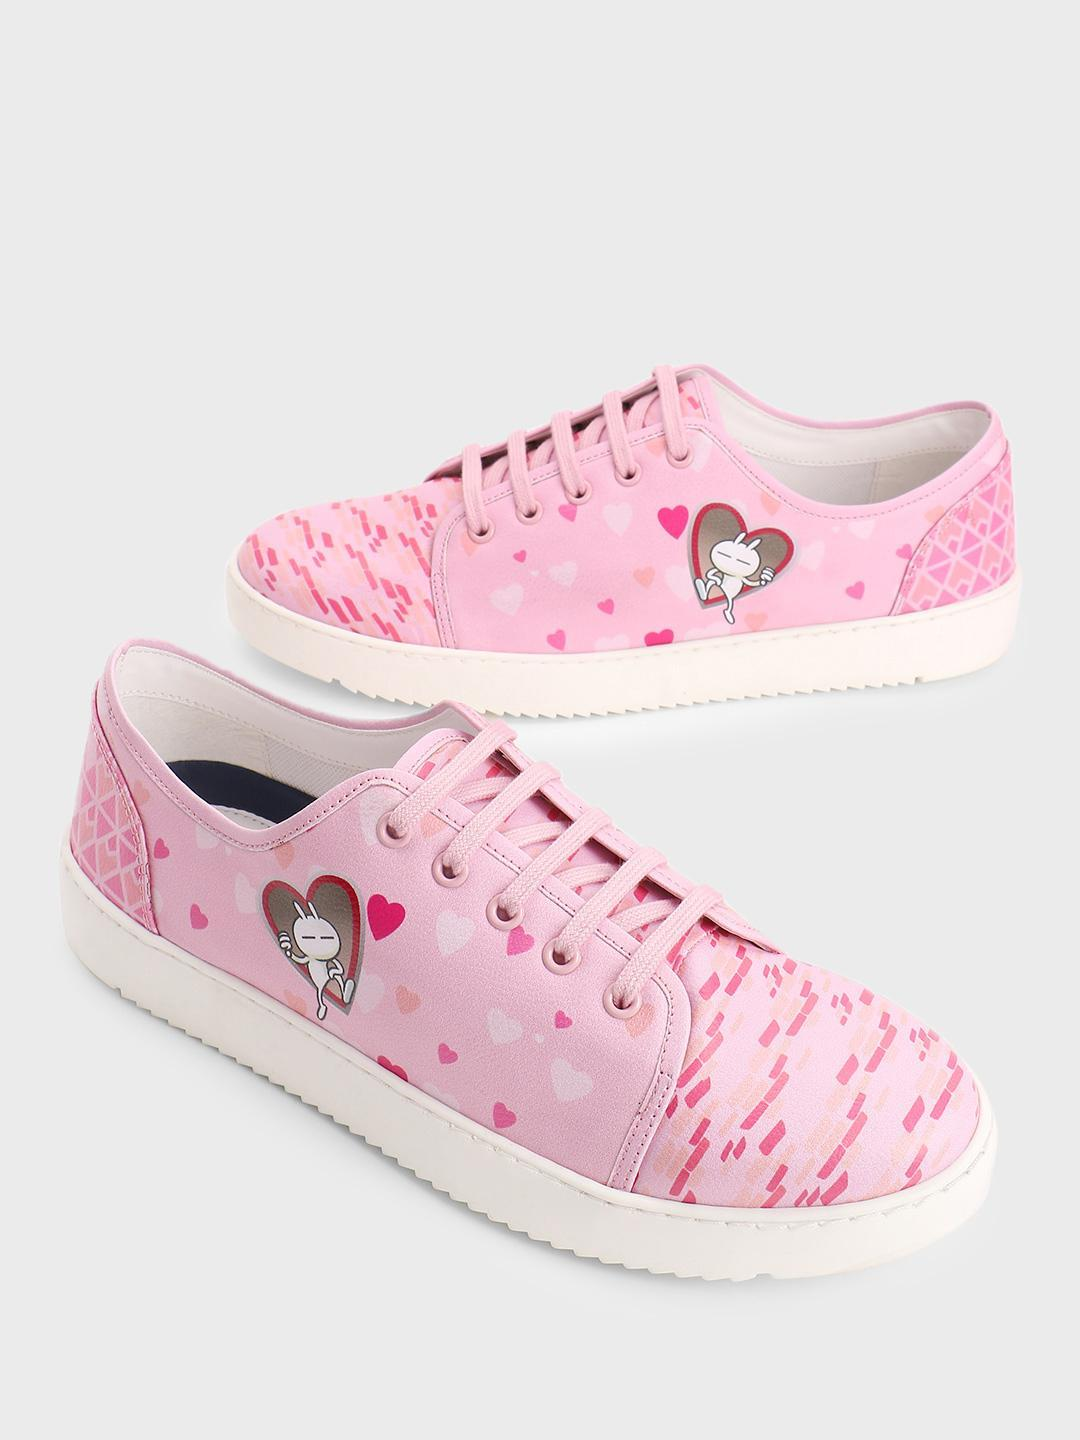 Manish Arora Paris X KOOVS Pink Tuzki Heart Digital Print Sneakers 1